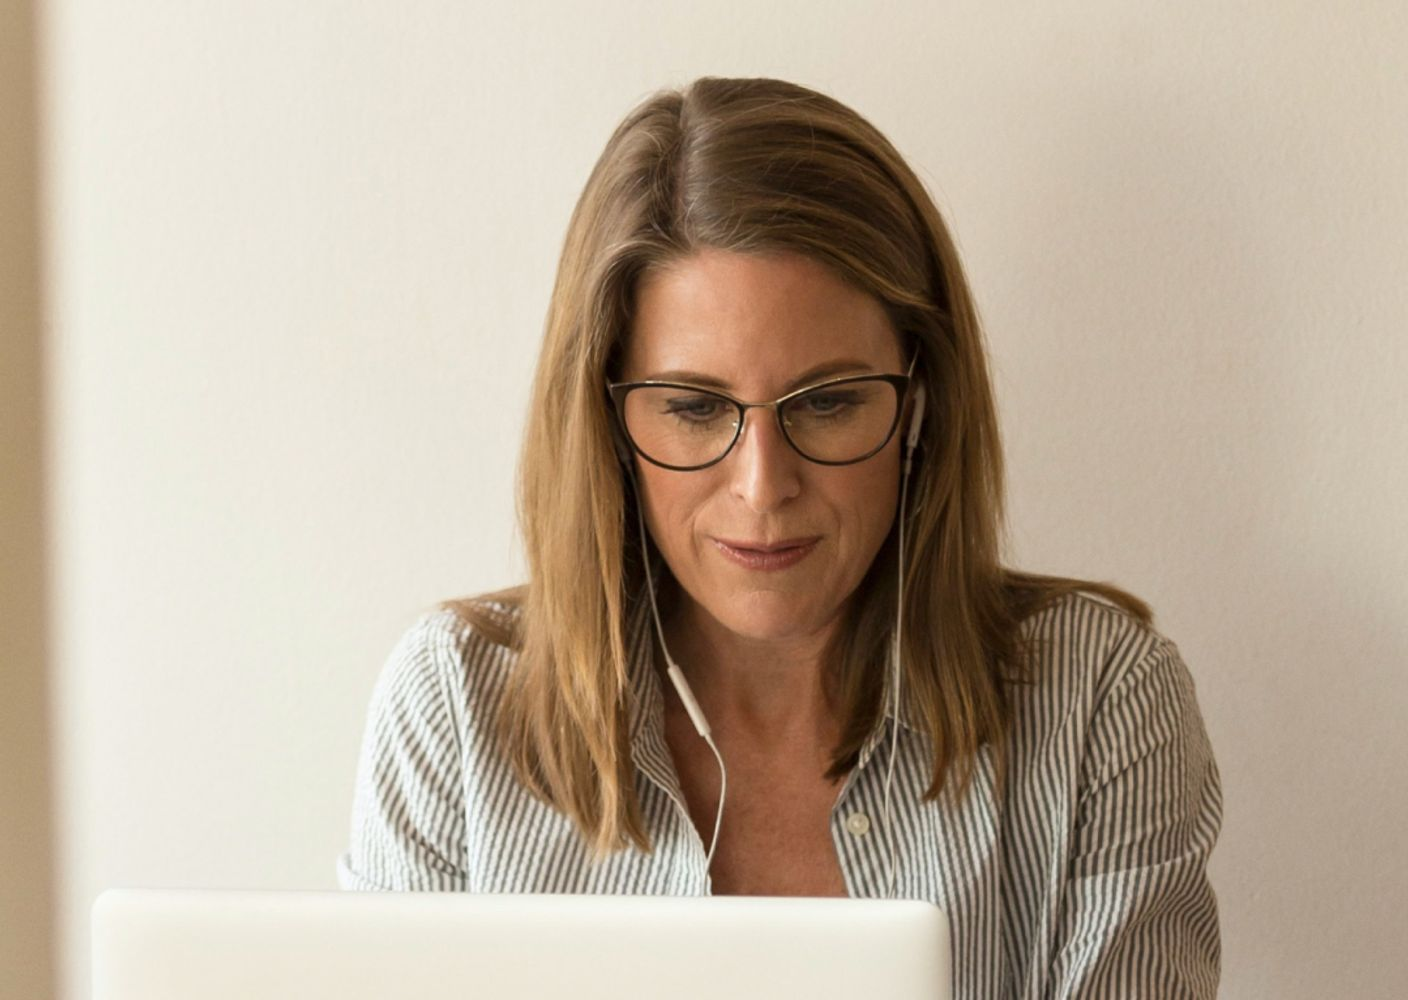 A woman with earphones works on her laptop computer